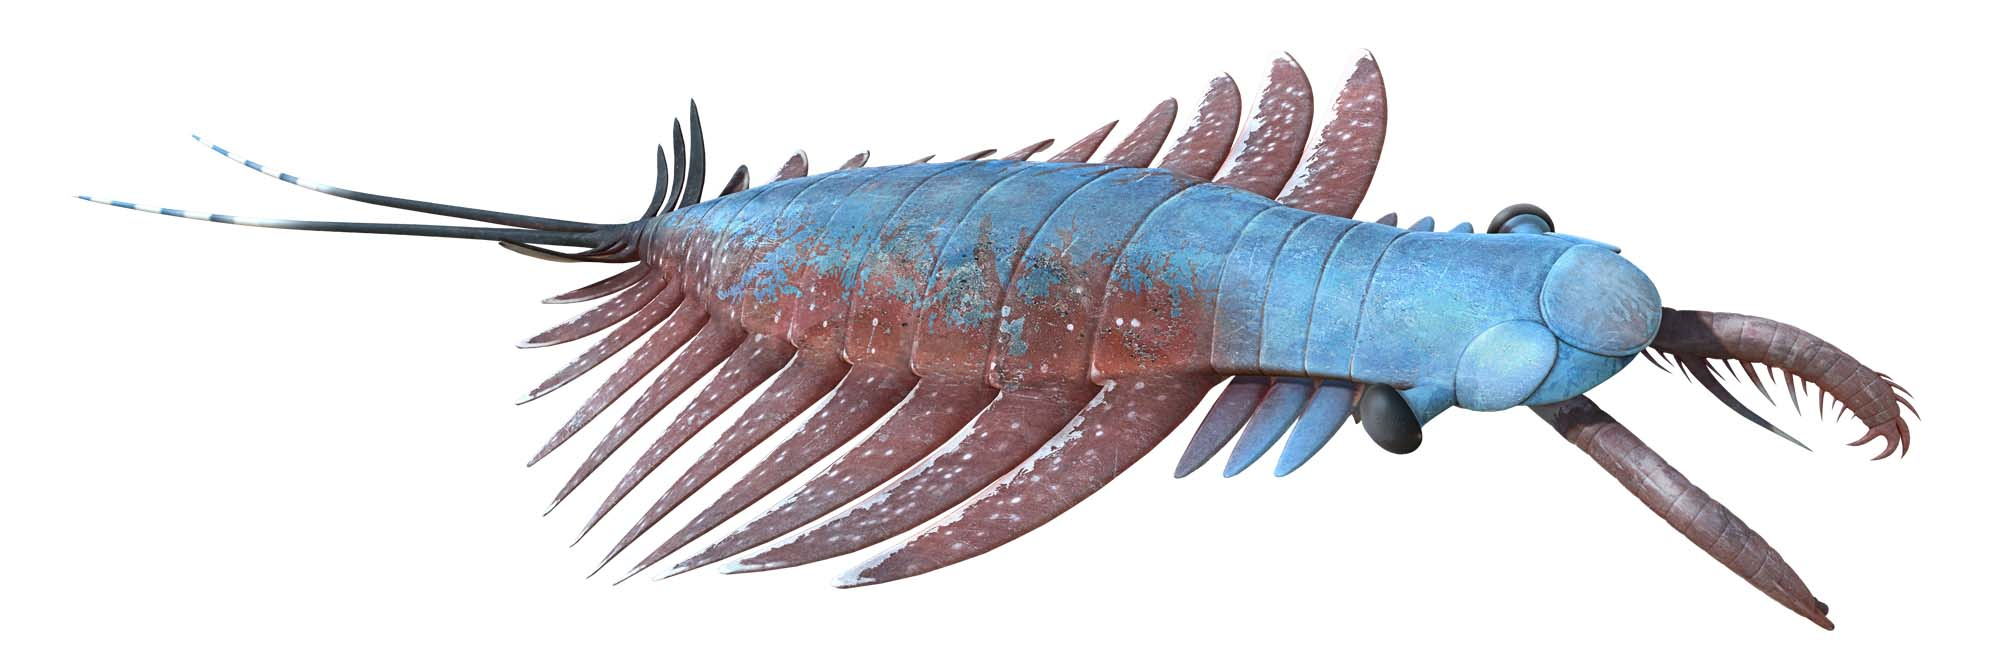 a photo of a mollusc, centipede like creature with front pincers